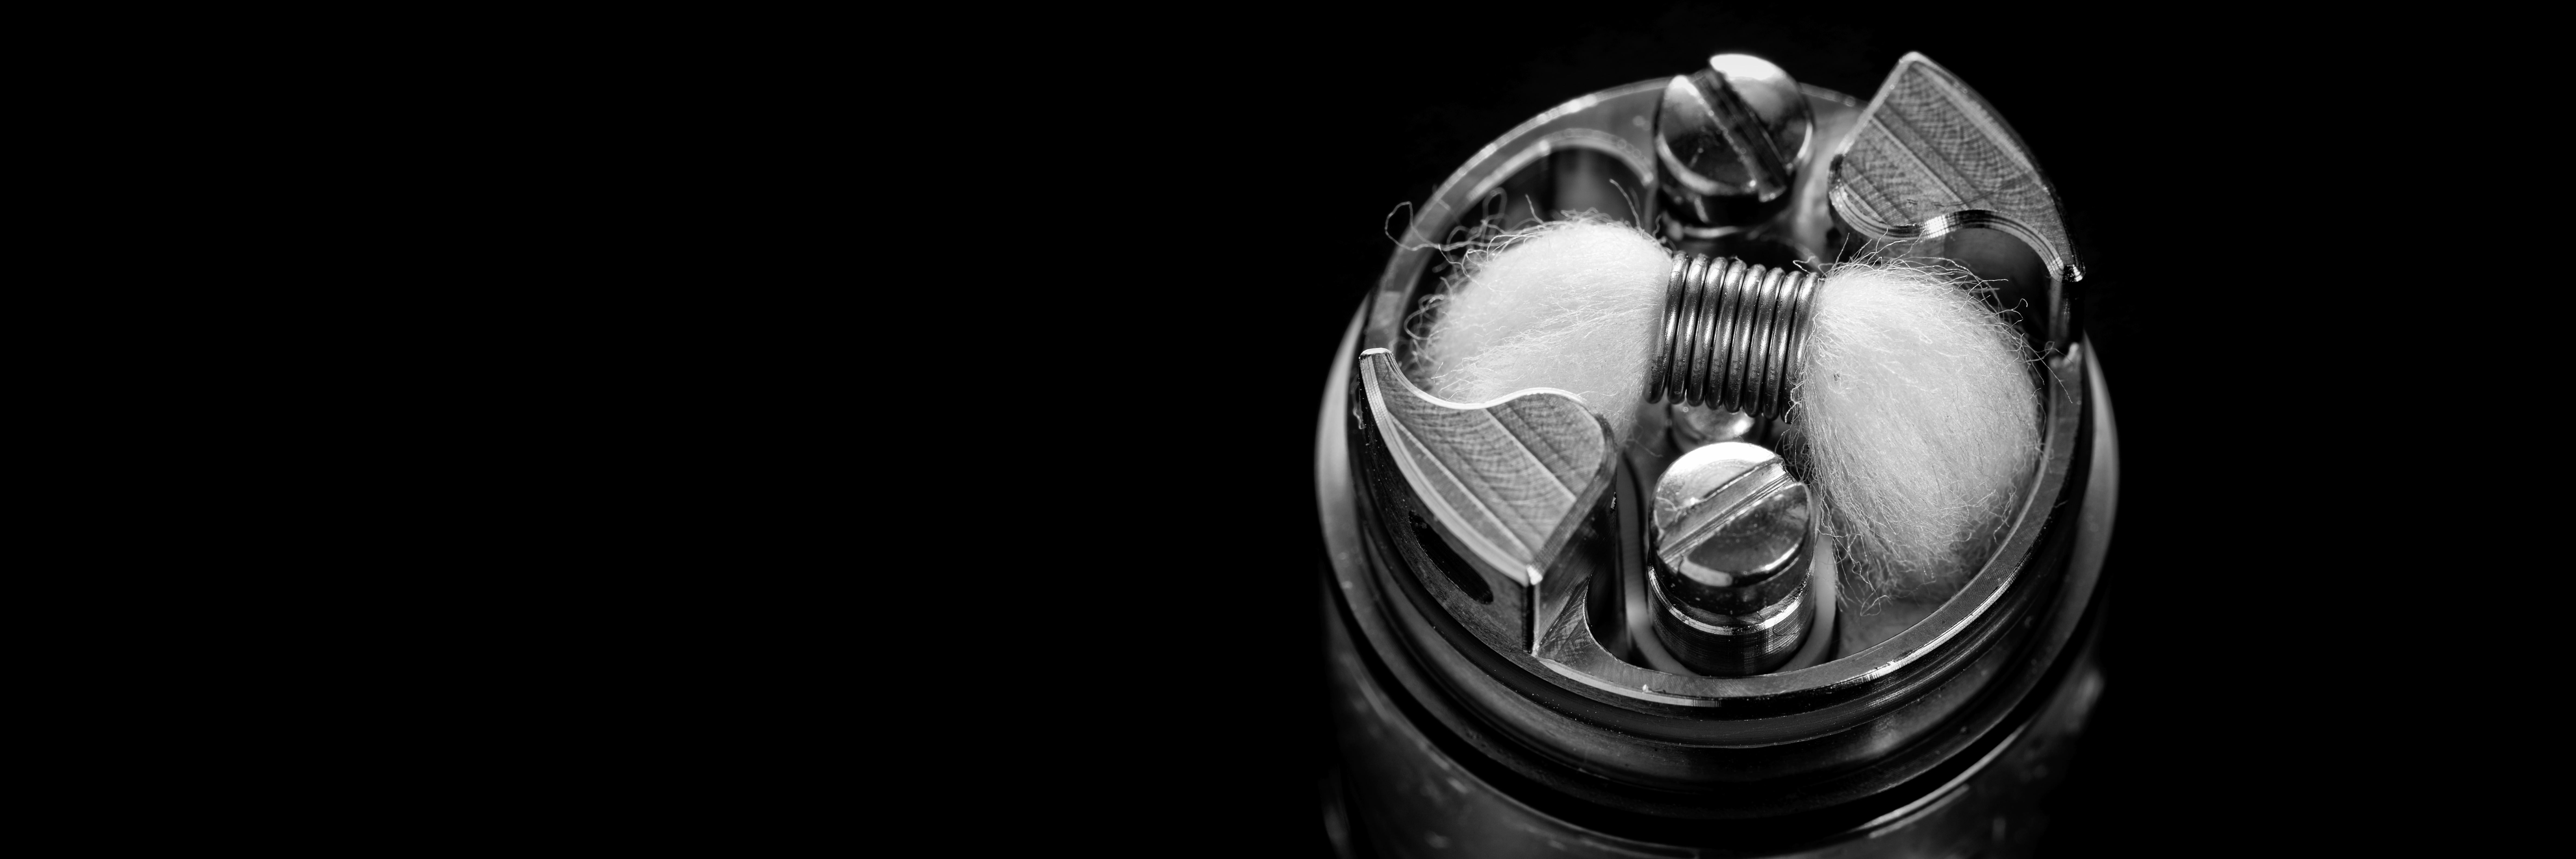 black and white, monochrome shot of single micro coil with japanese organic cotton wick in high end rebuildable dripping tank atomizer for flavour chaser, vaping device, vape gear, vaporizer equipment